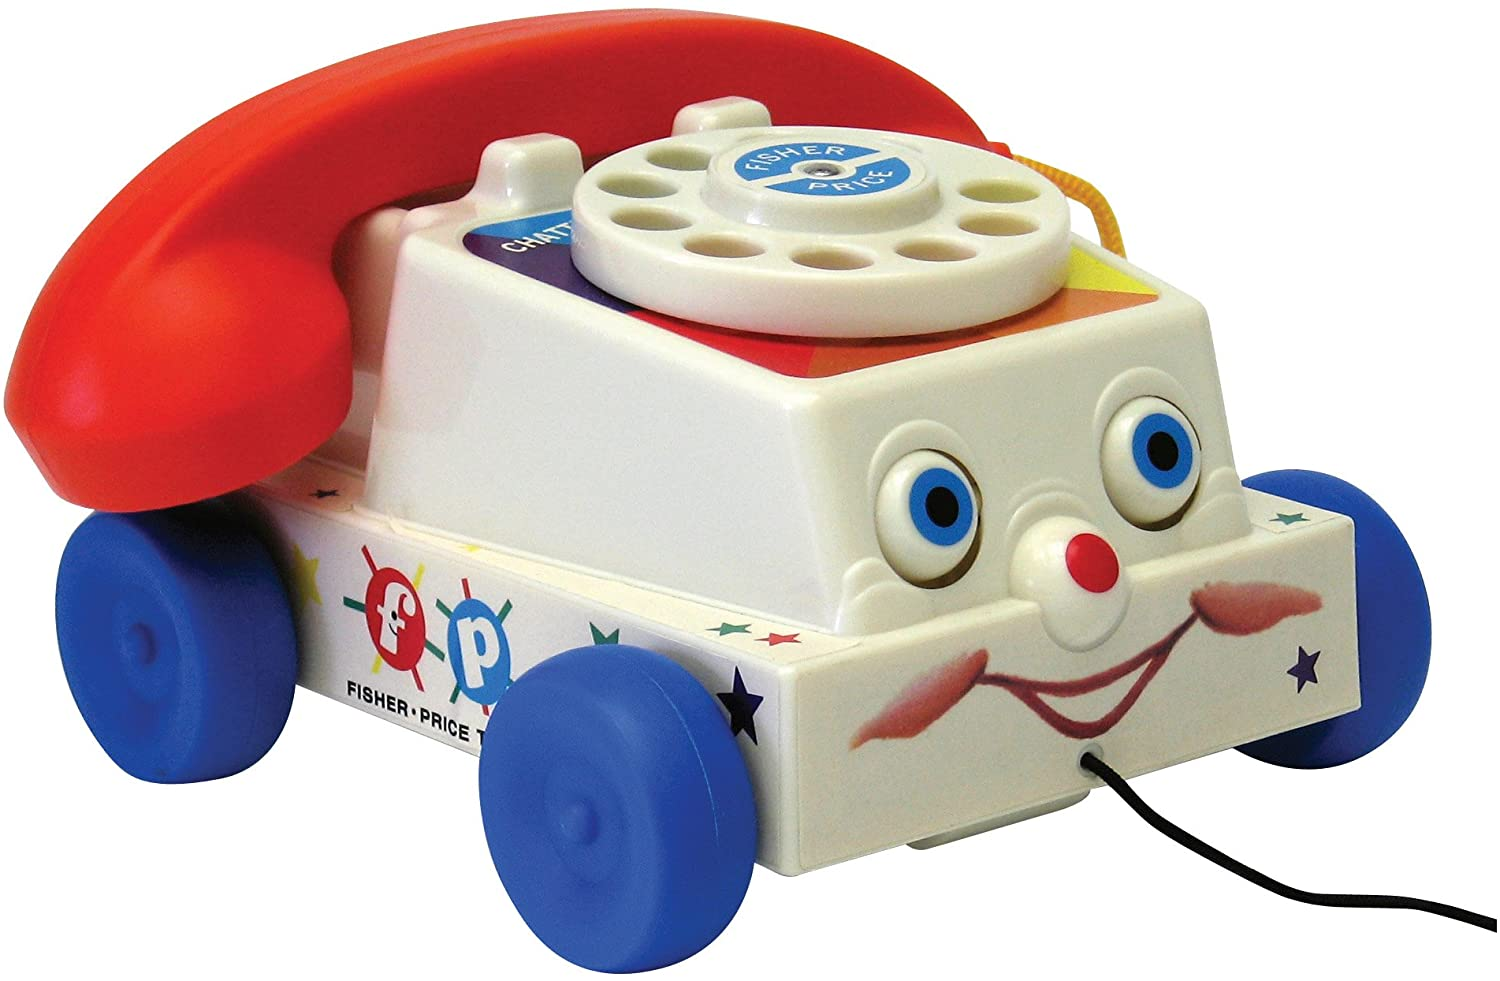 Fisher Price Chatter Phone A2z Science Learning Toy Store